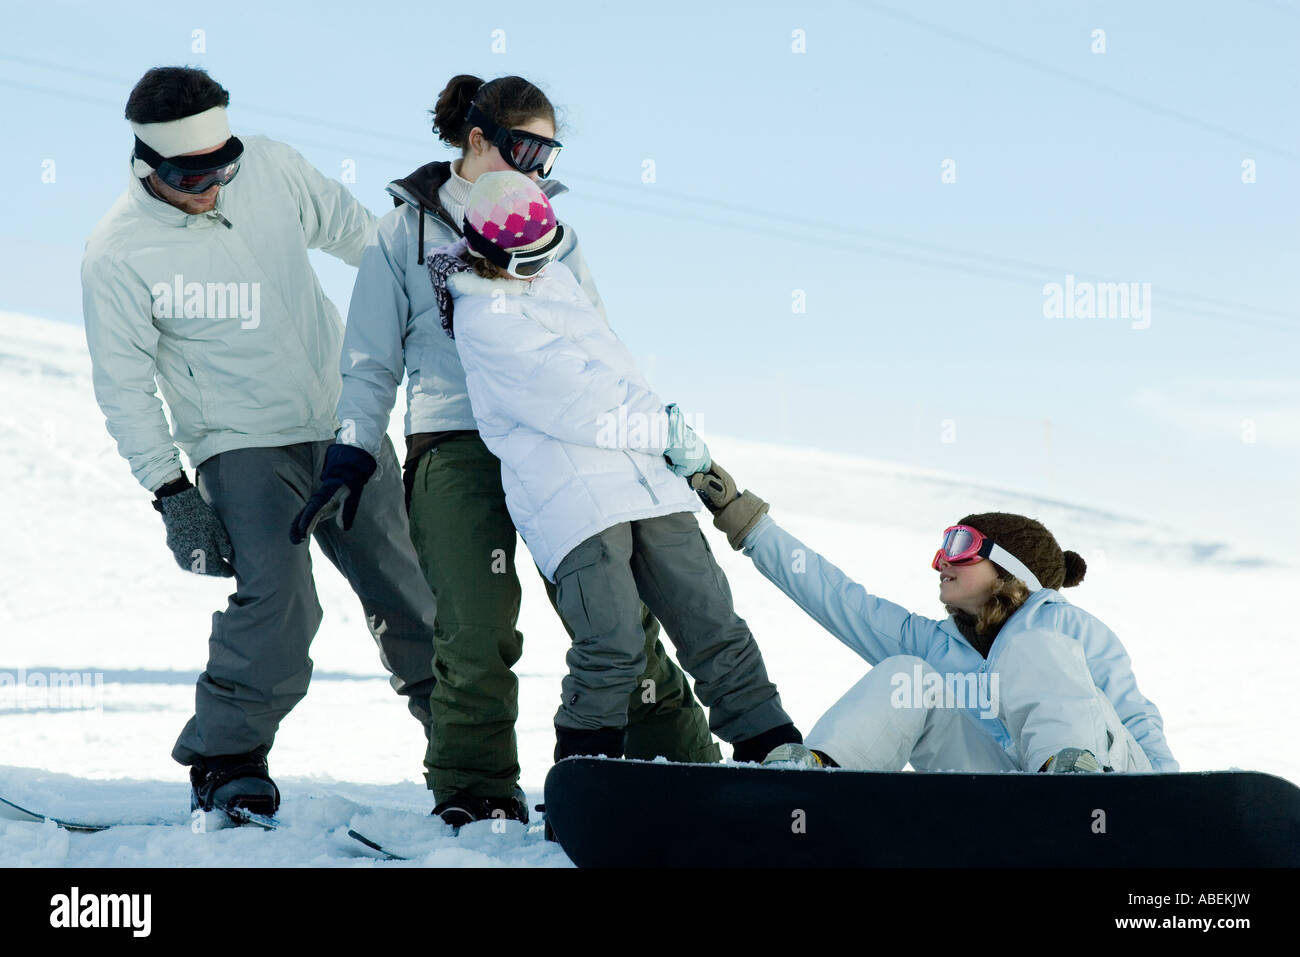 Girl sitting on ground, on snowboard, being pulled up by friends - Stock Image